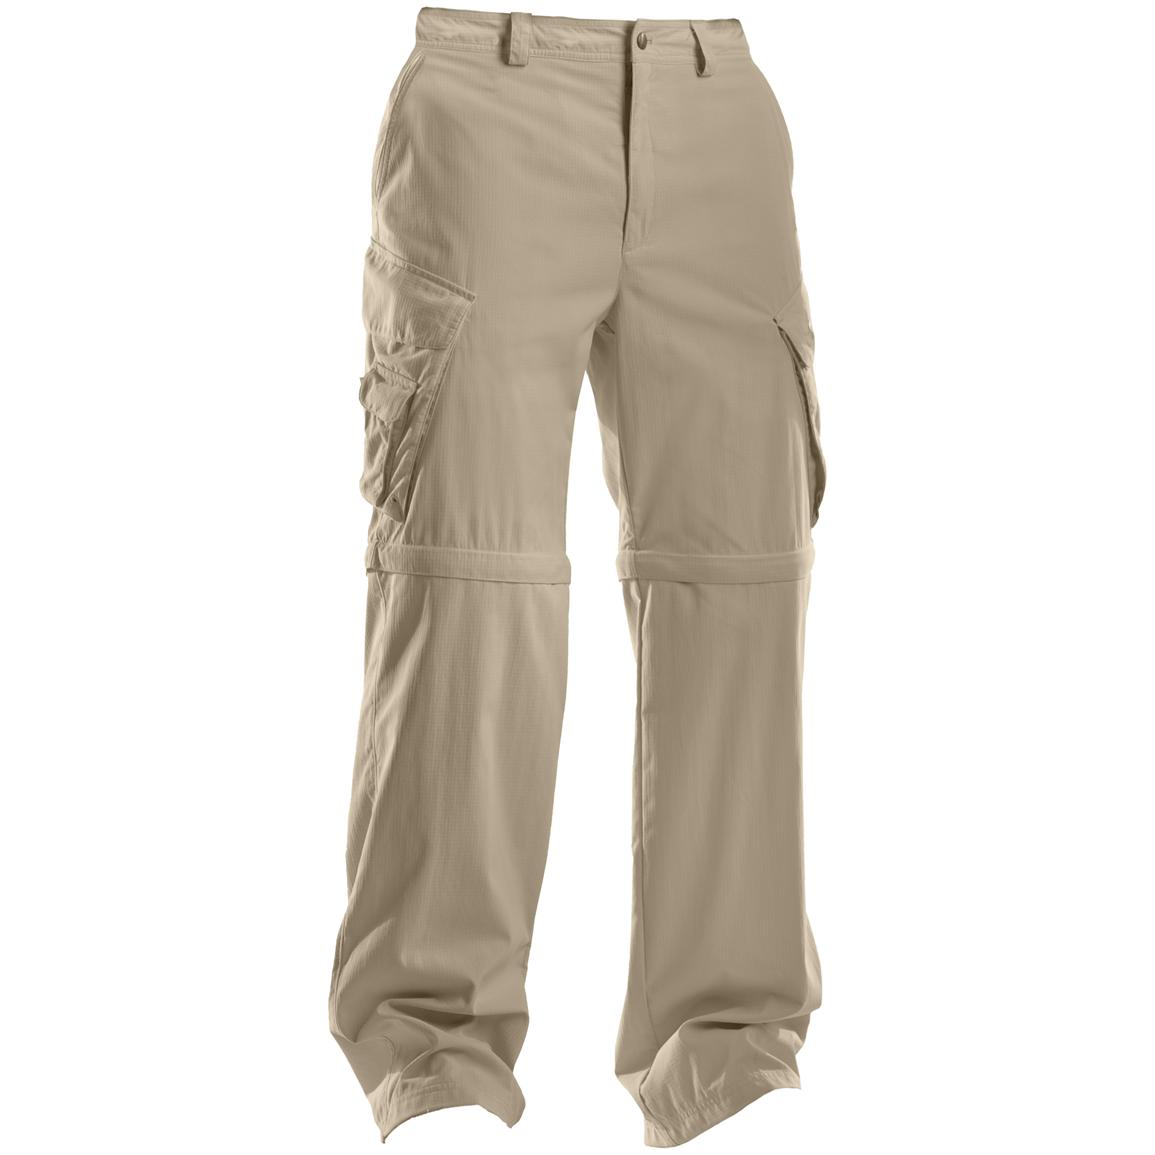 Men's Under Armour® Zip-off Trail Pants, Uniform